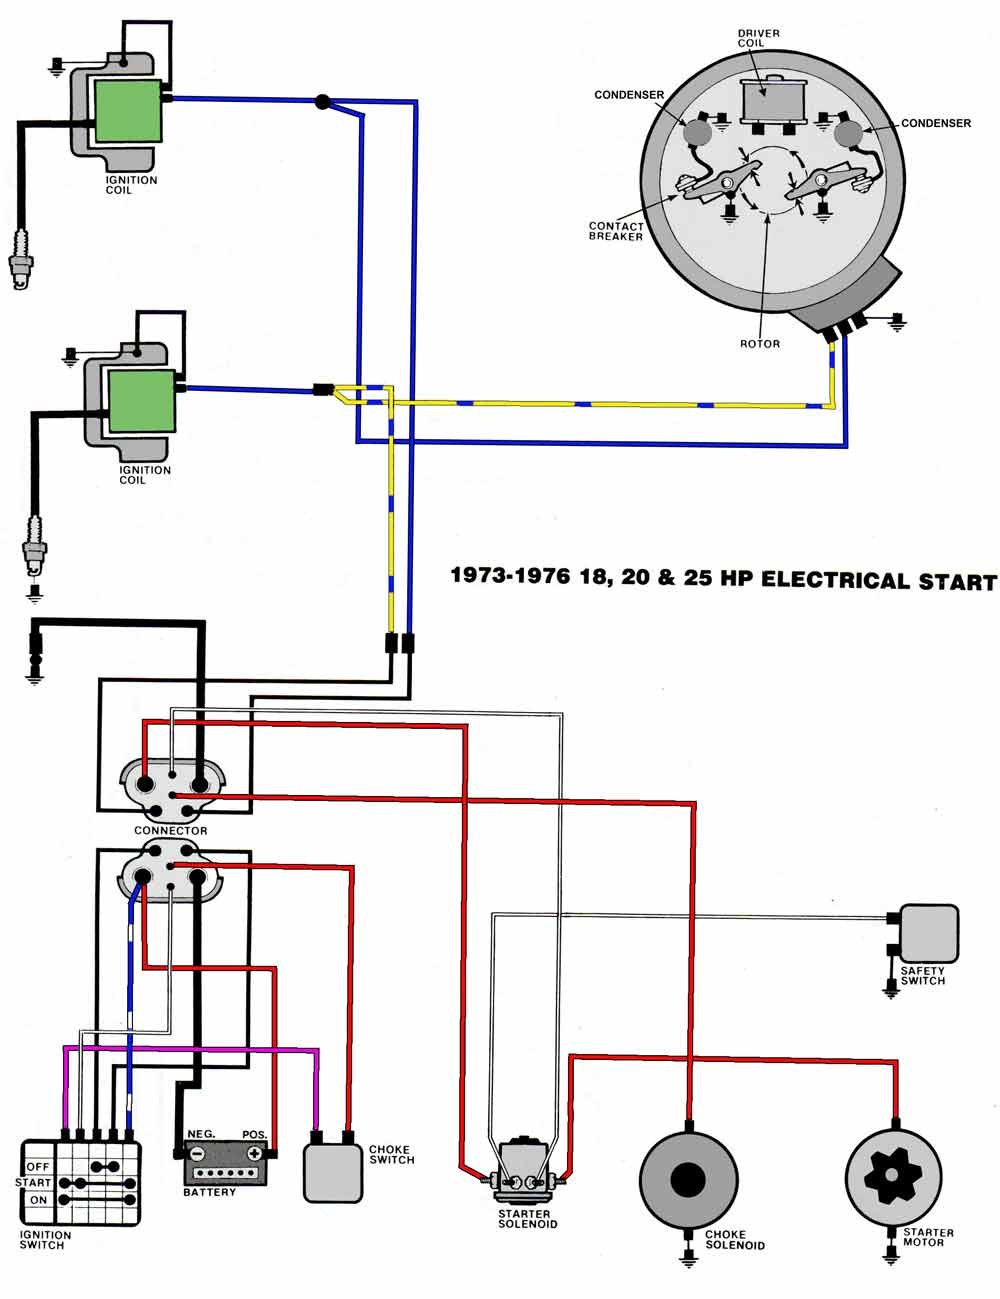 25 Hp Mercury Outboard Wiring Diagram - Wiring Diagram Img